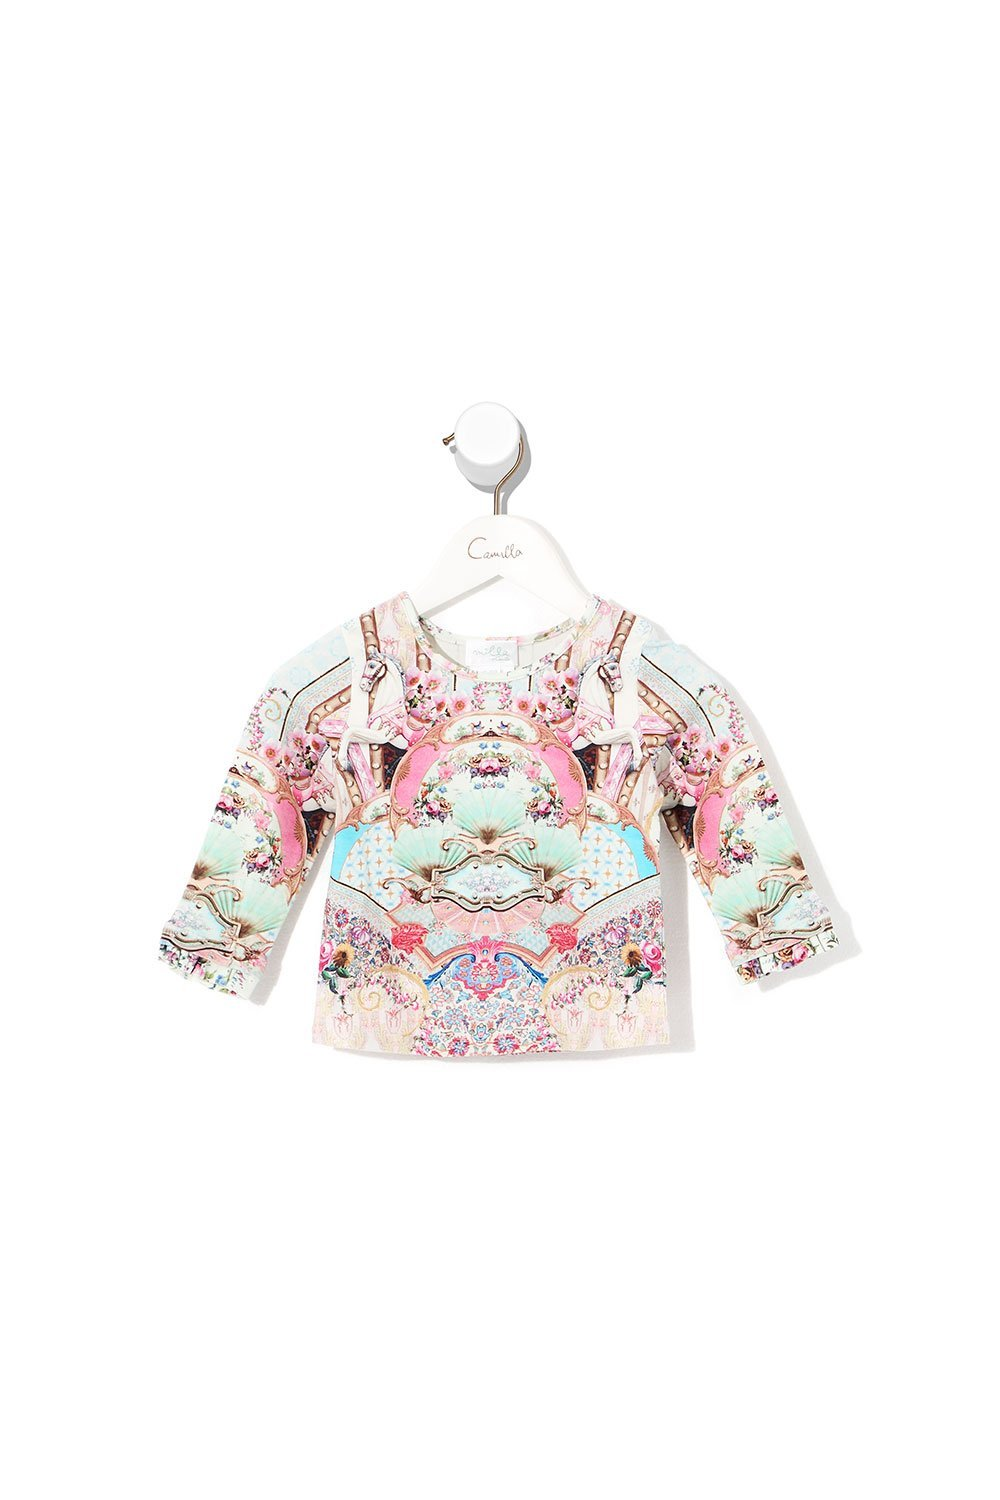 Carousel Mademoiselle Babies Long Sleeve Top with Frill